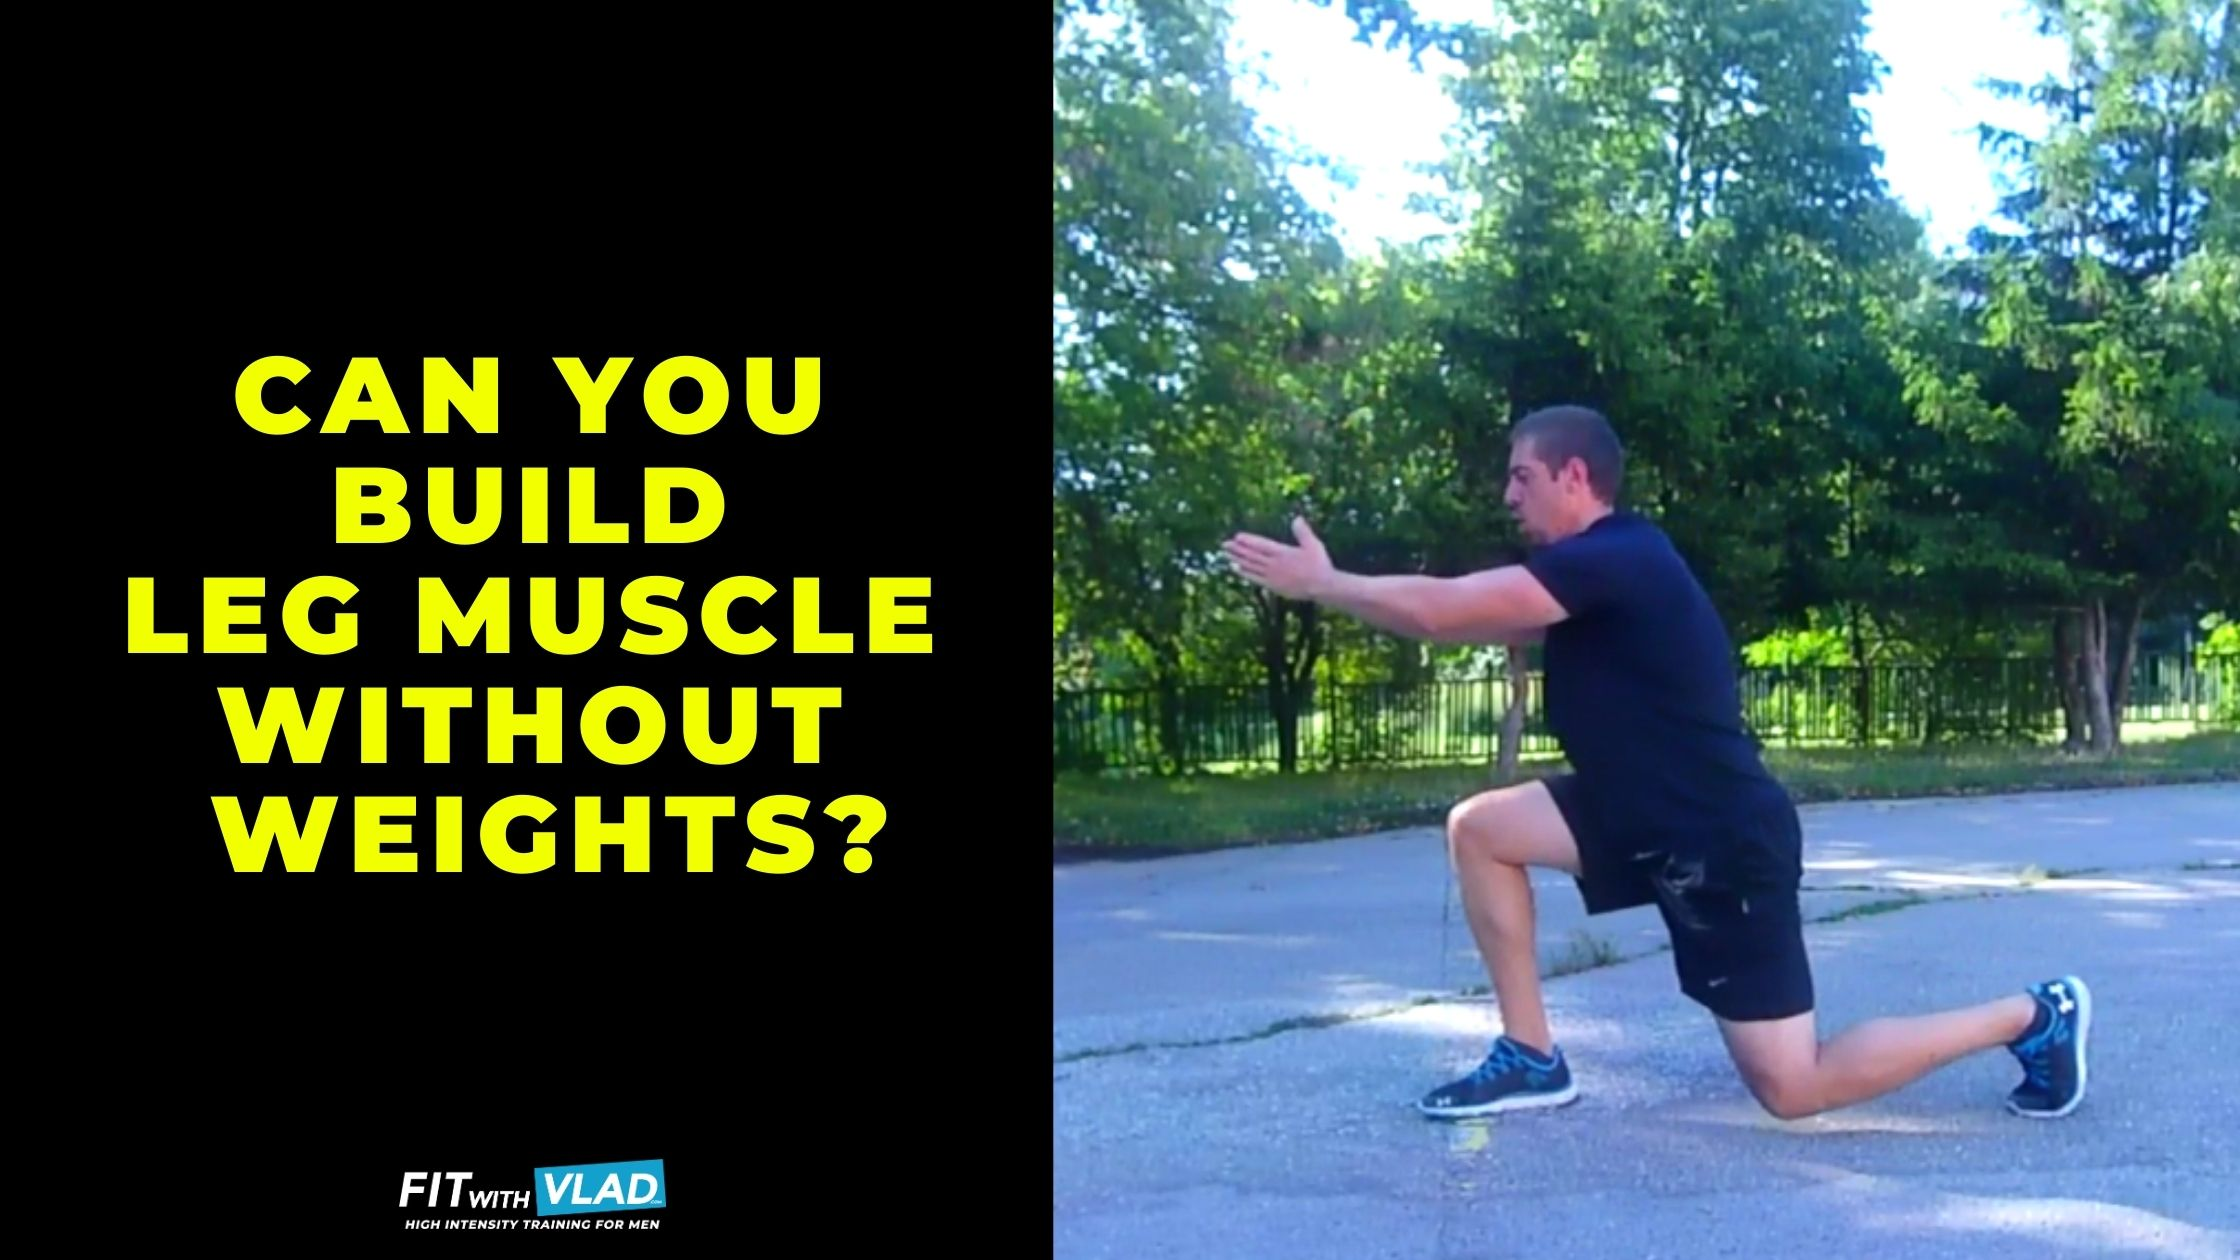 Can you build leg muscle without weights